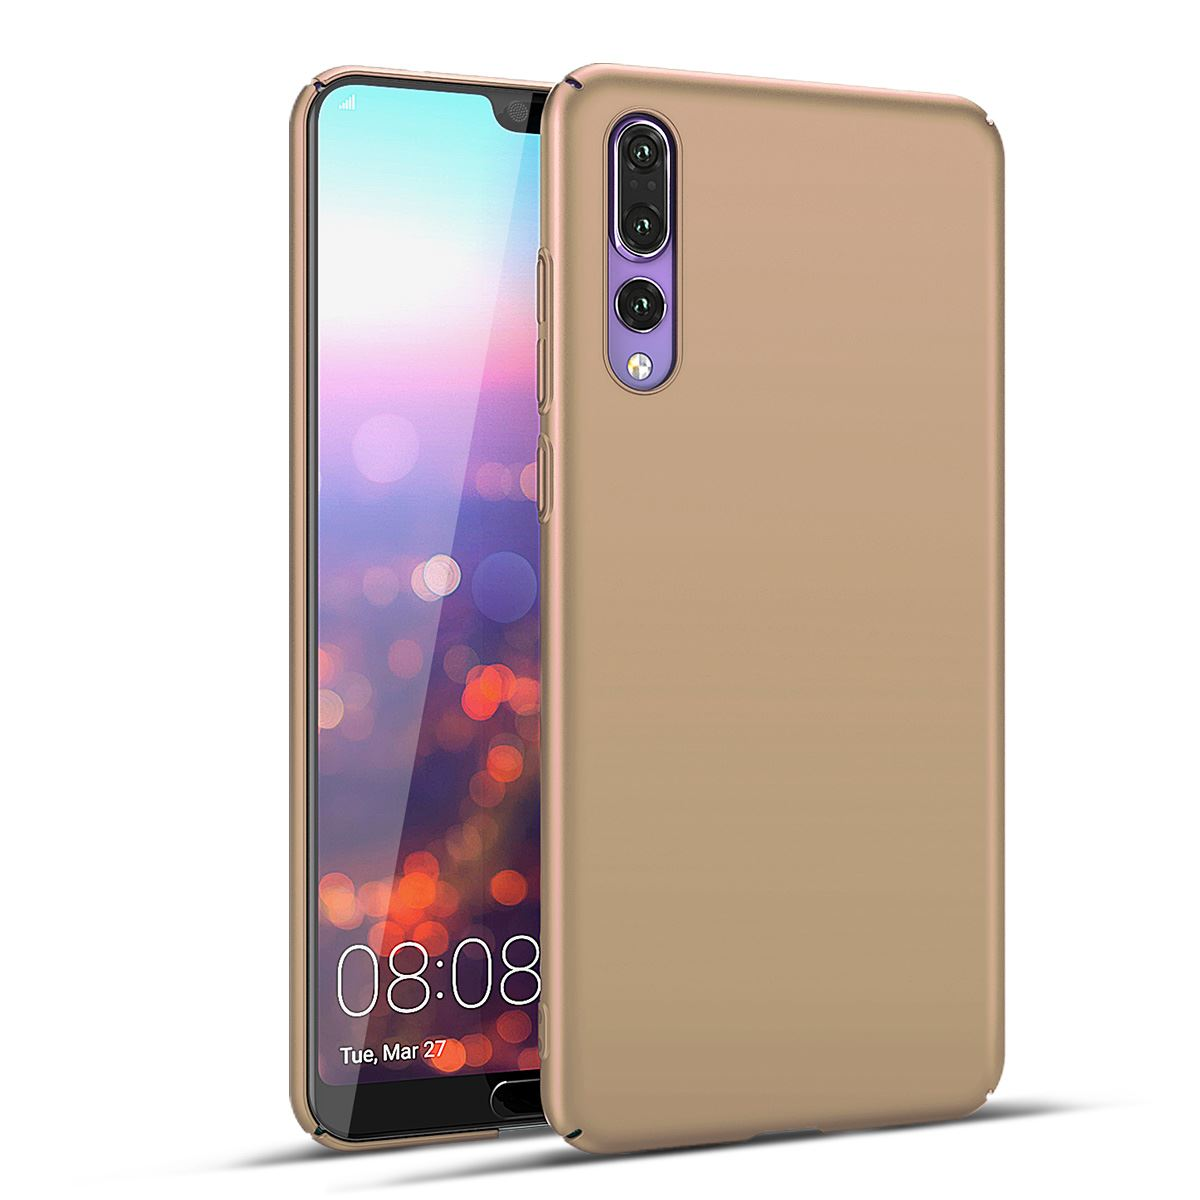 Luxury-Protective-Slim-Thin-Hard-Back-Case-Cover-For-Huawei-P20-Pro-P10-P-Smart thumbnail 55